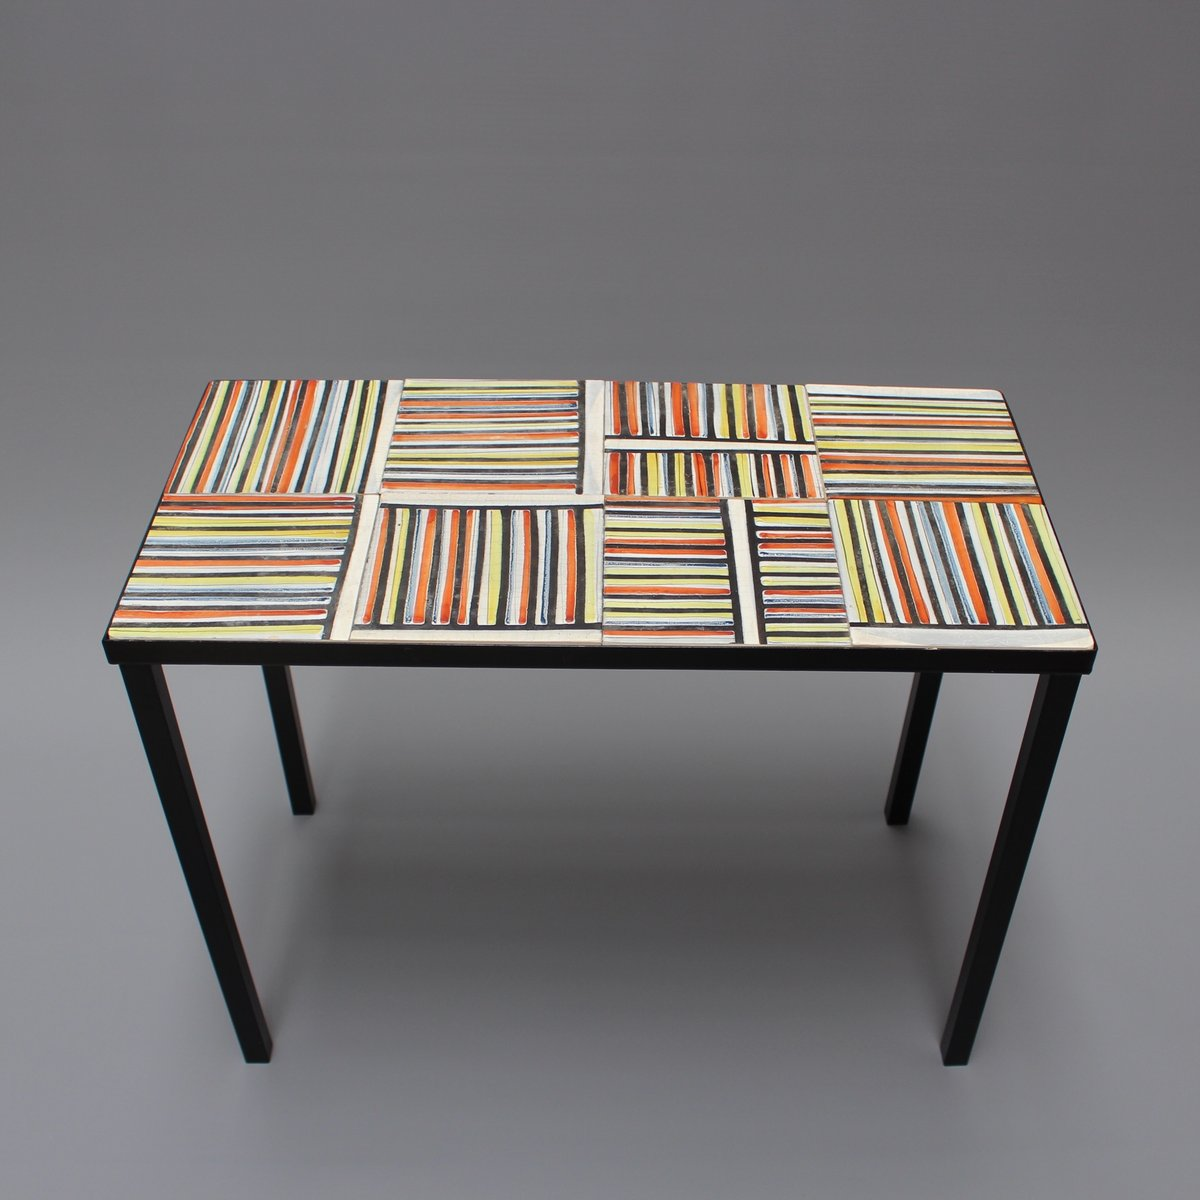 Coffee table with pyjama ceramic tiles by roger capron 1950s for coffee table with pyjama ceramic tiles by roger capron 1950s dailygadgetfo Gallery